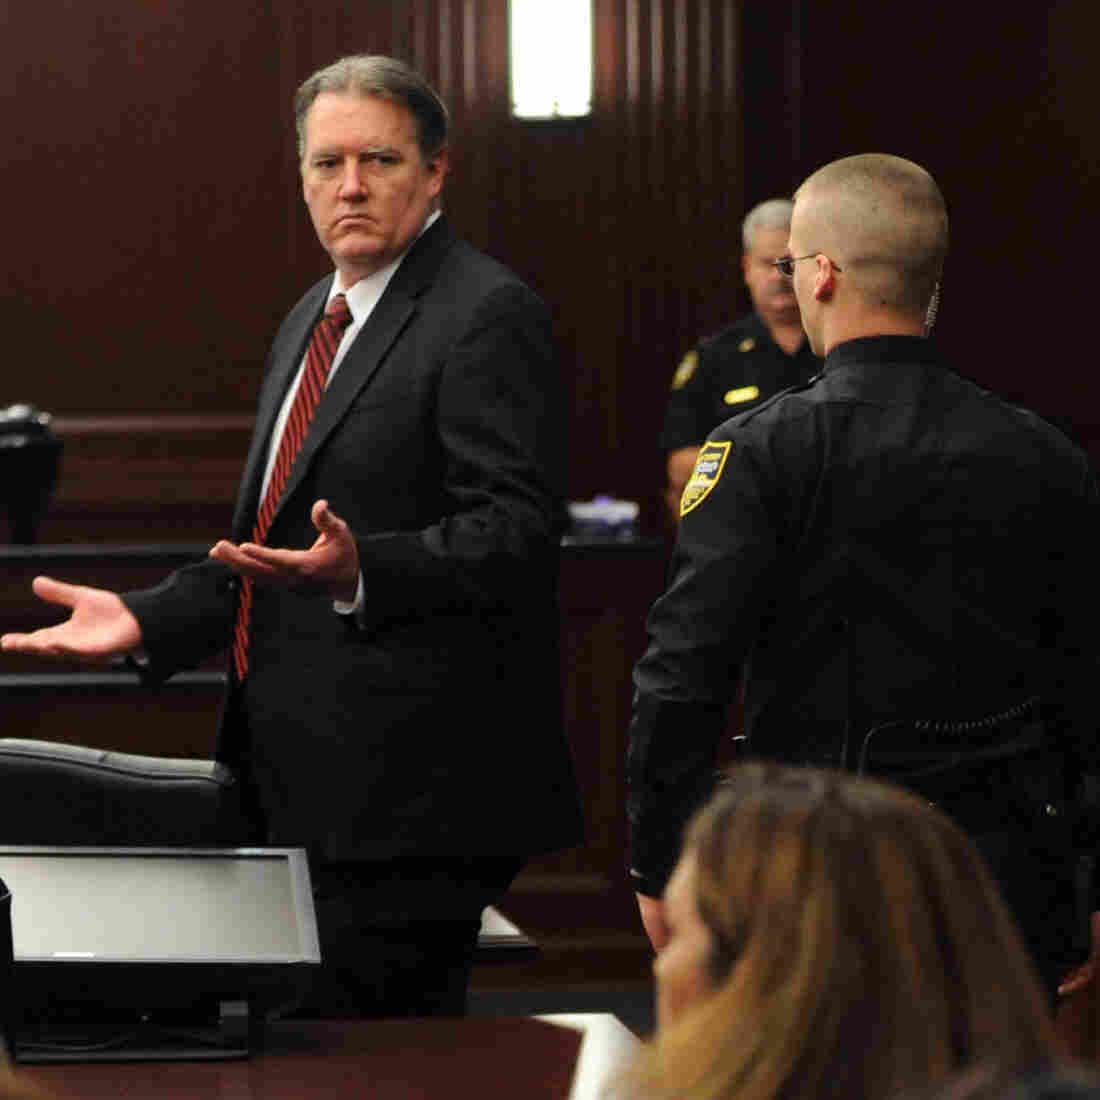 Mistrial On Murder Charge In Florida Gas Station Shooting